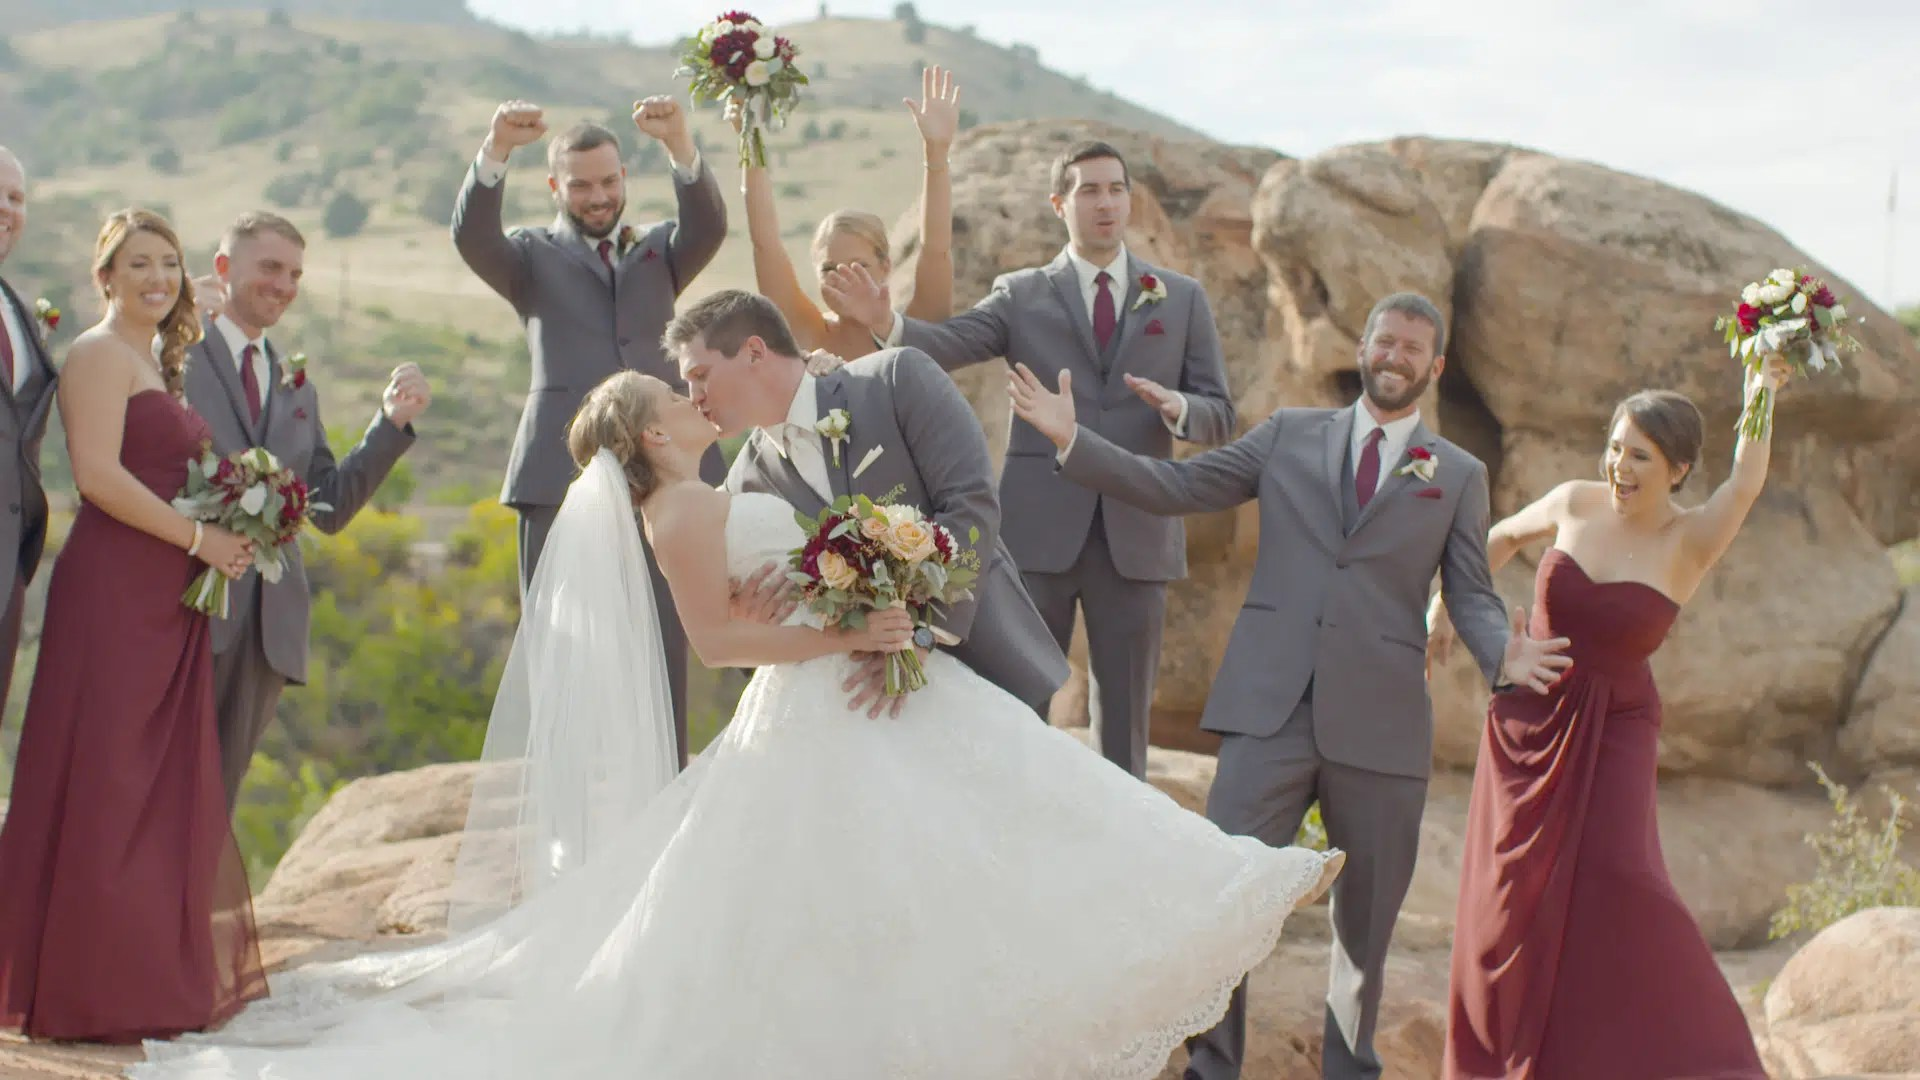 Danielle & Adam | Wedding Highlights Video | Willow Ridge Manor, Morrison, CO